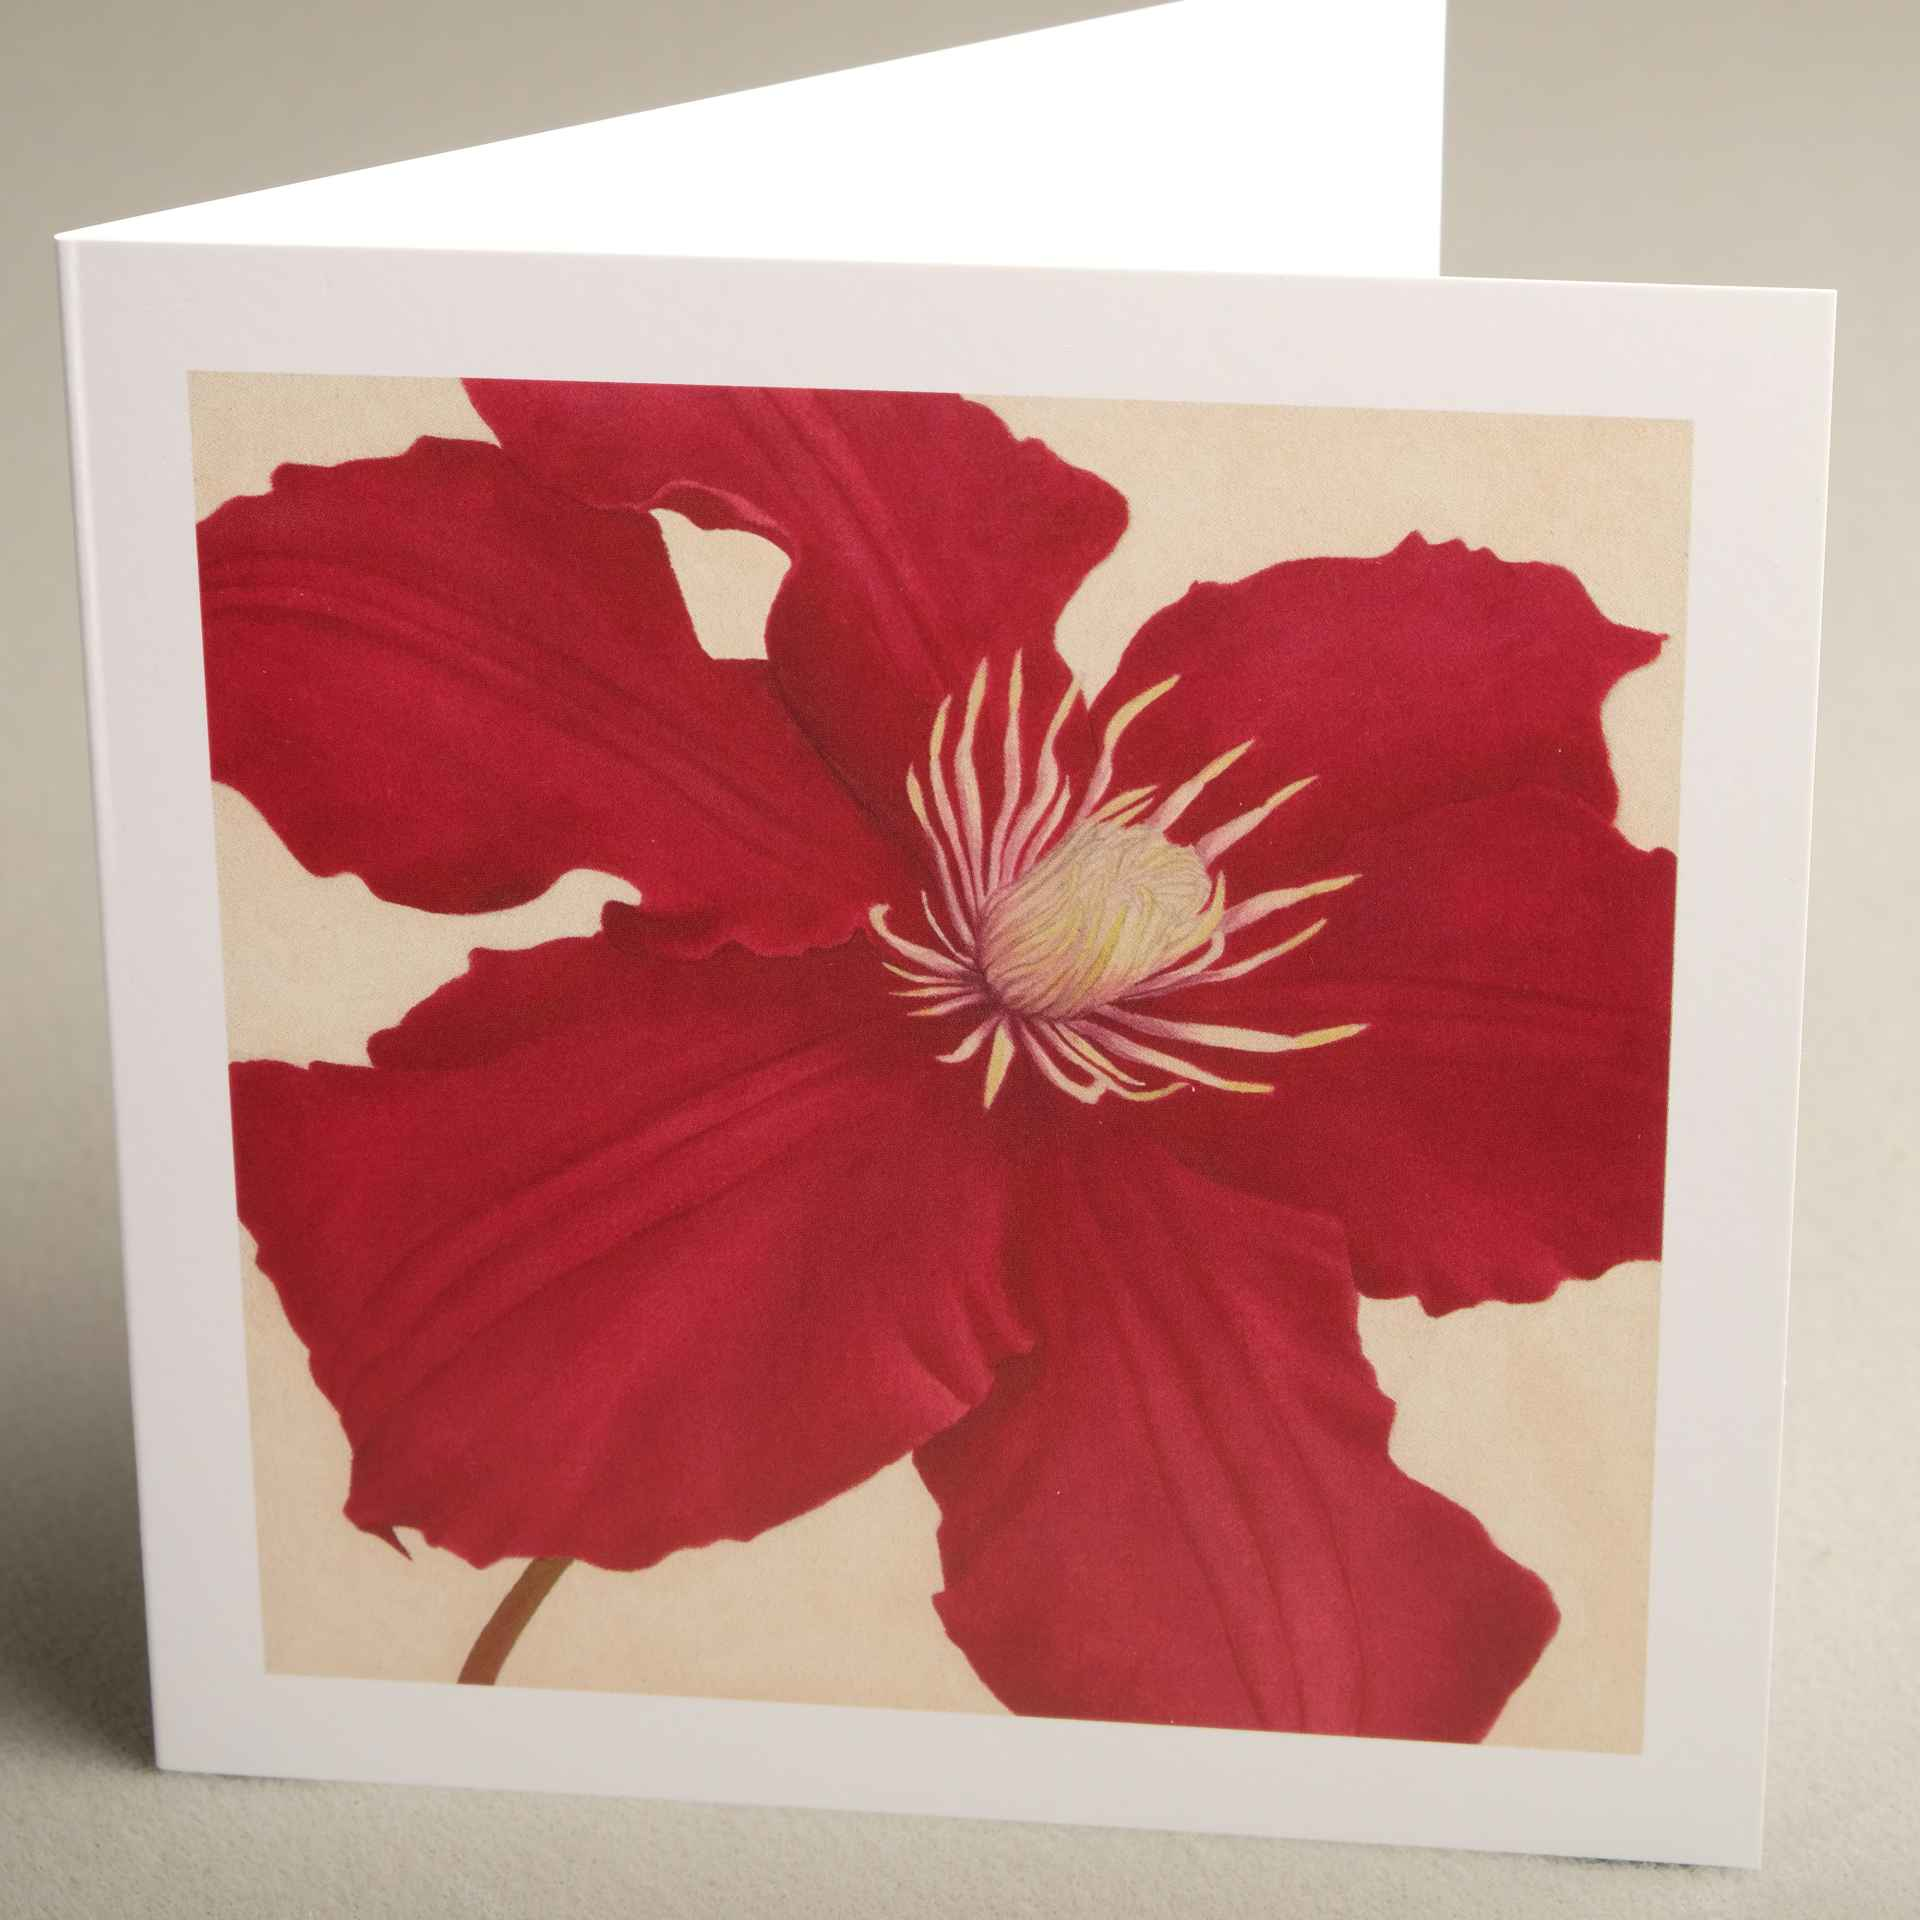 Floral greetings cards from jaci hogan art flower design greetings greetings cards clematis rosemoor smooth m4hsunfo